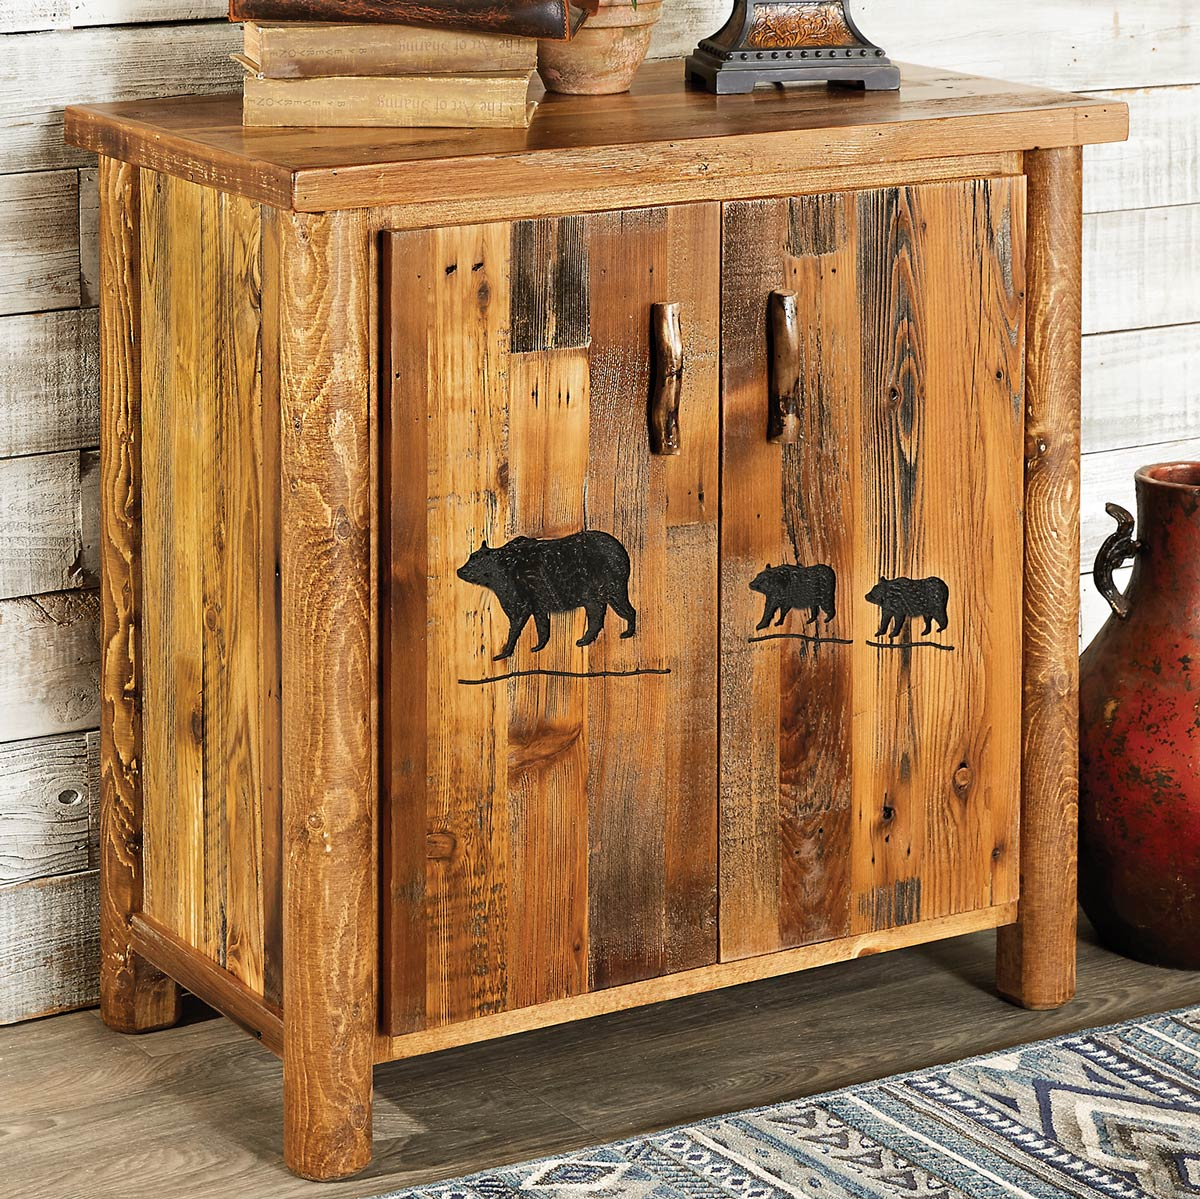 Black Forest Decor Barnwood 2 door cabinet with bear carving